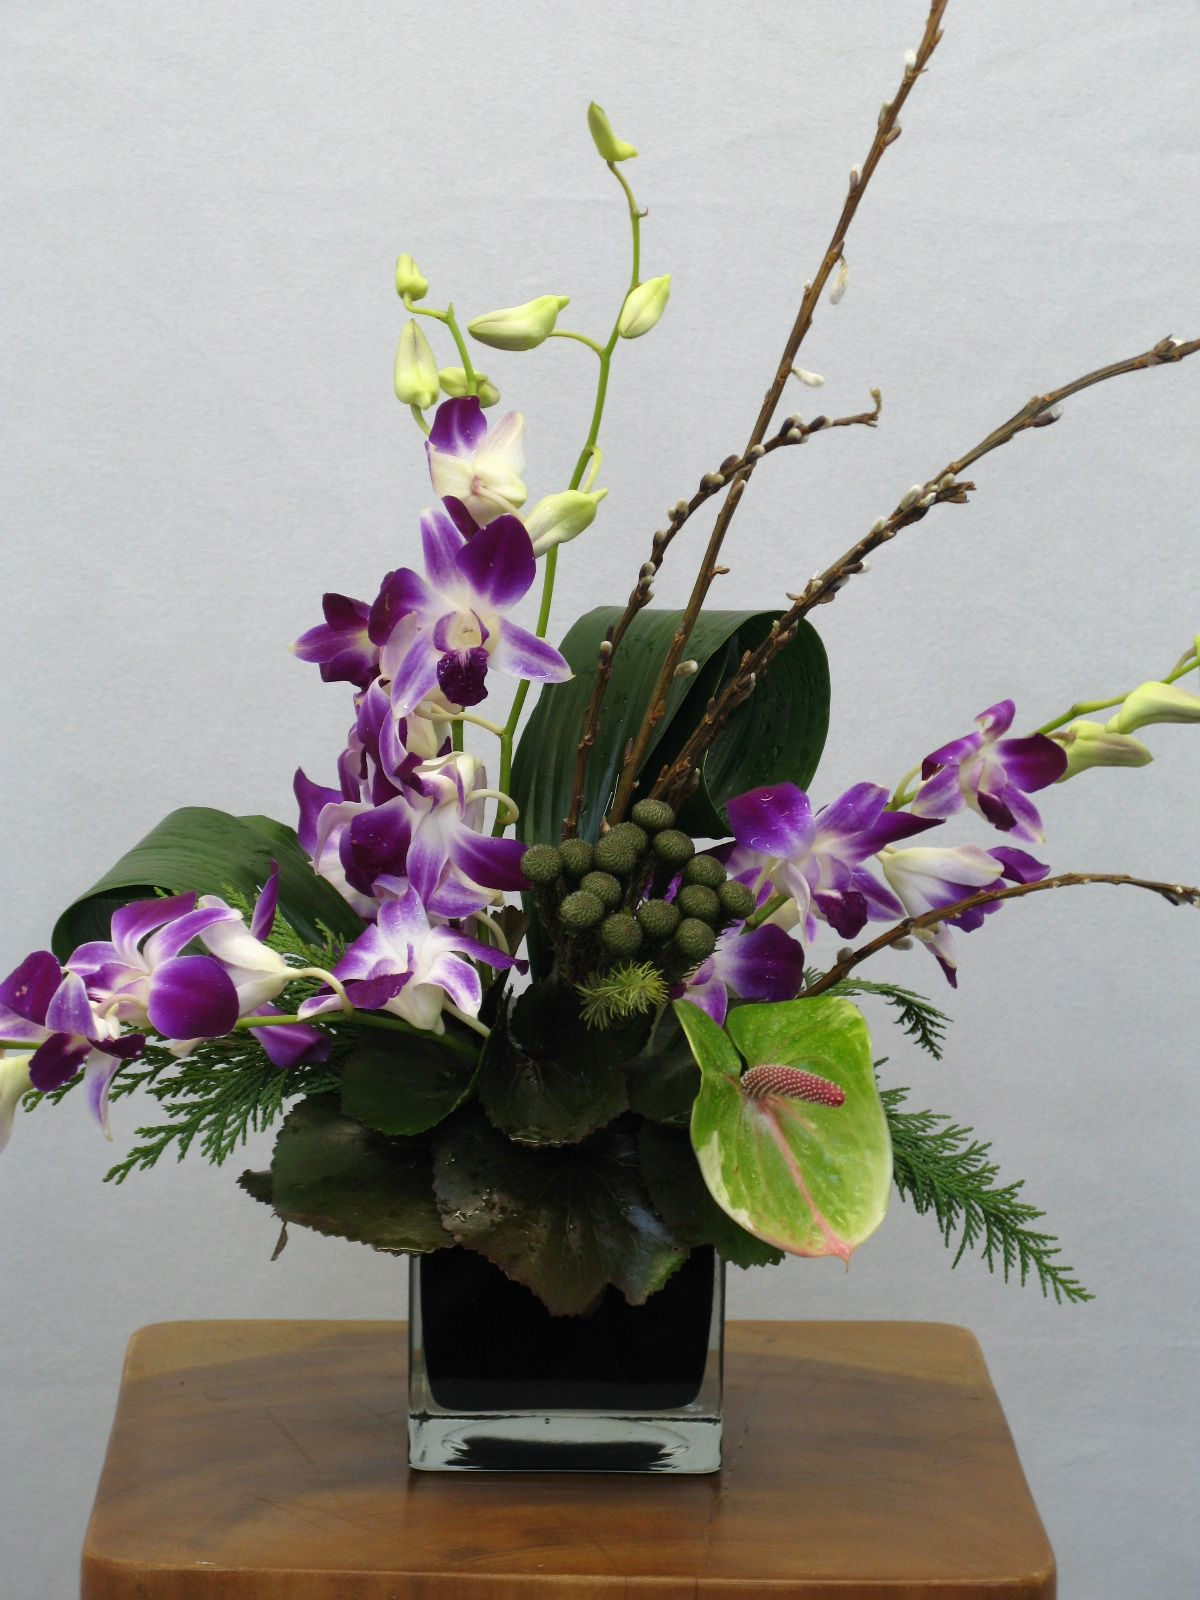 office flower arrangements. Vibrant Orchids Are The Highlight Of This Unique Floral Centerpiece Office Flower Arrangements